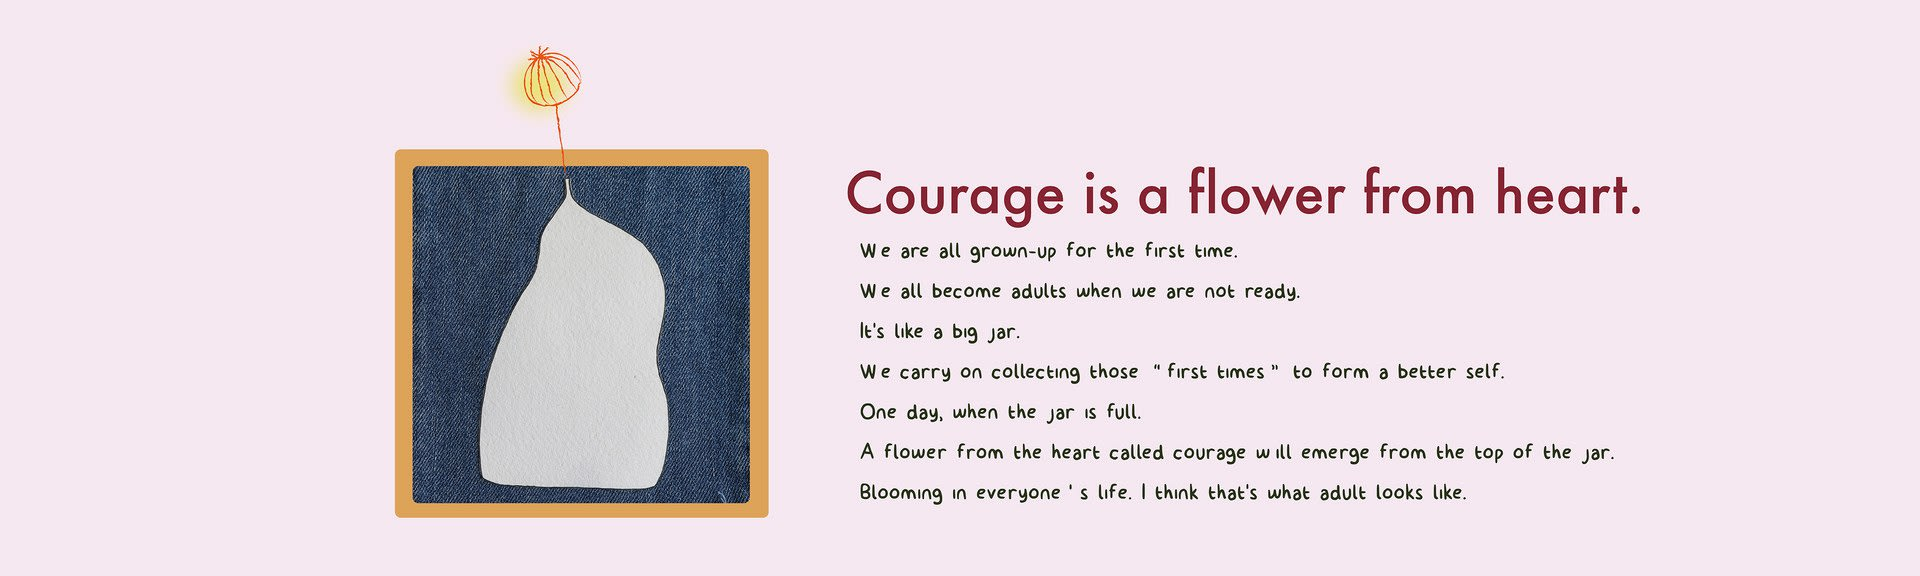 Courage is a flower from heart.